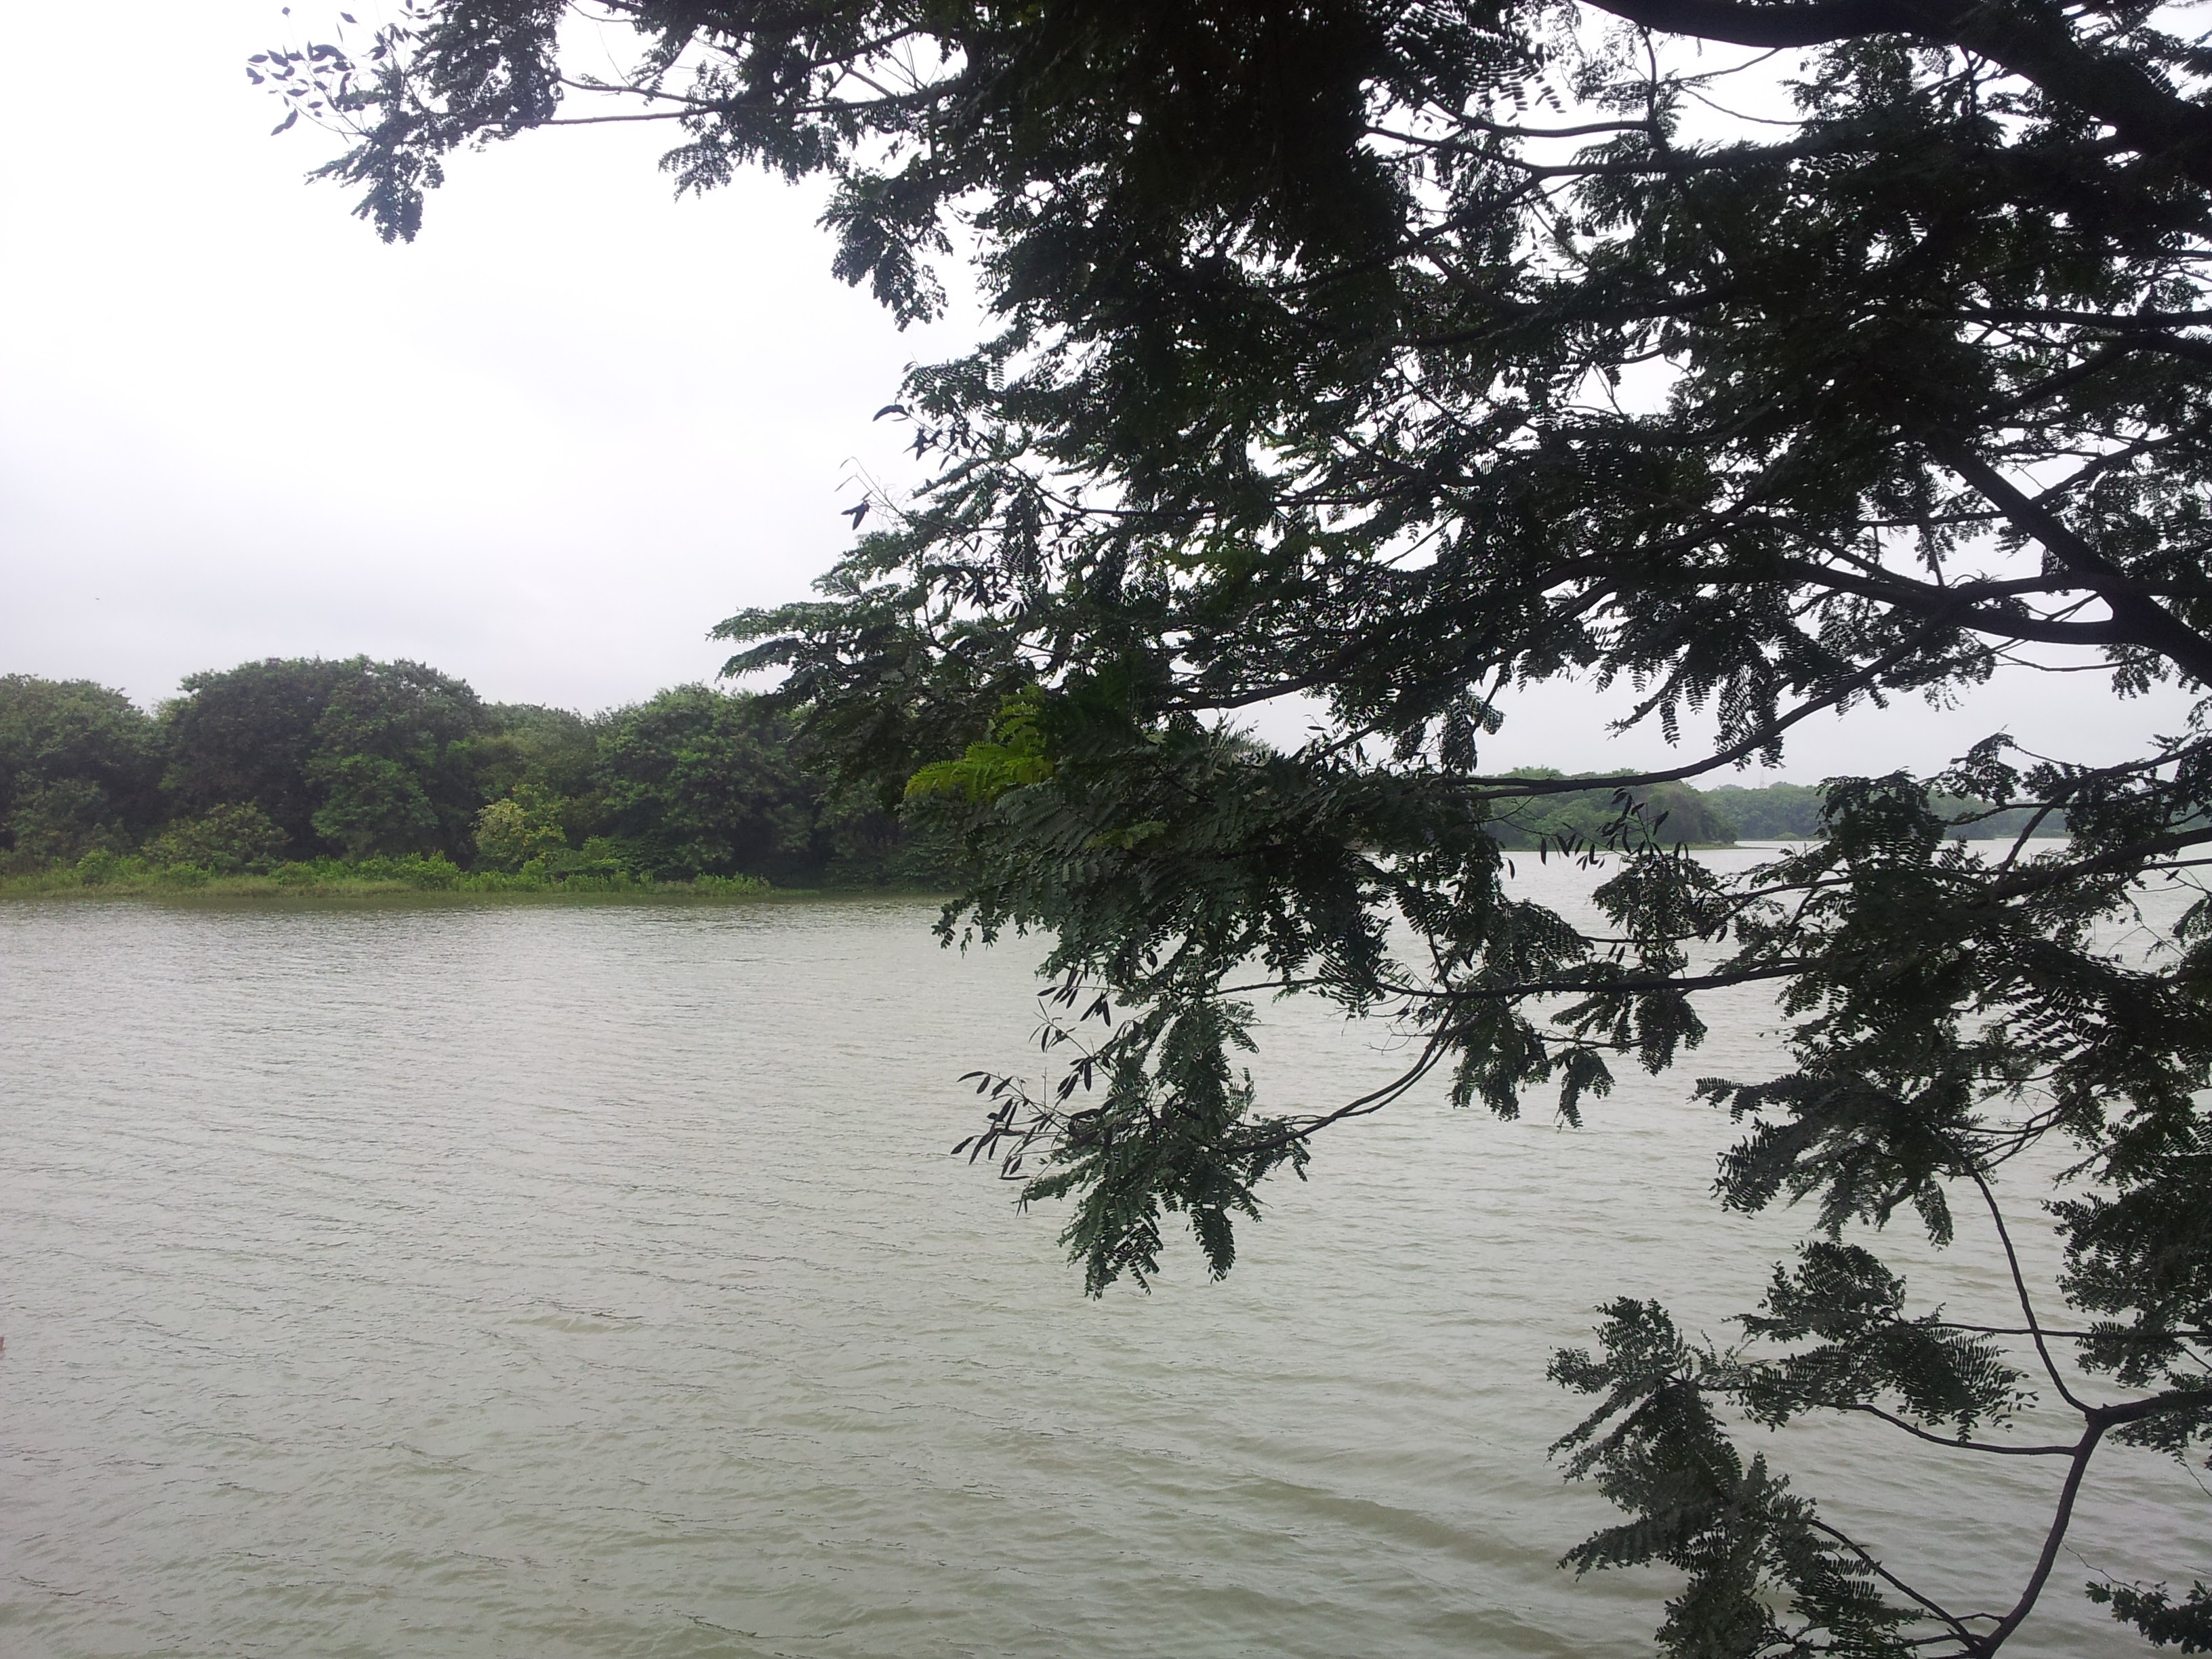 Hebbal Lake looked really nice in the rain.